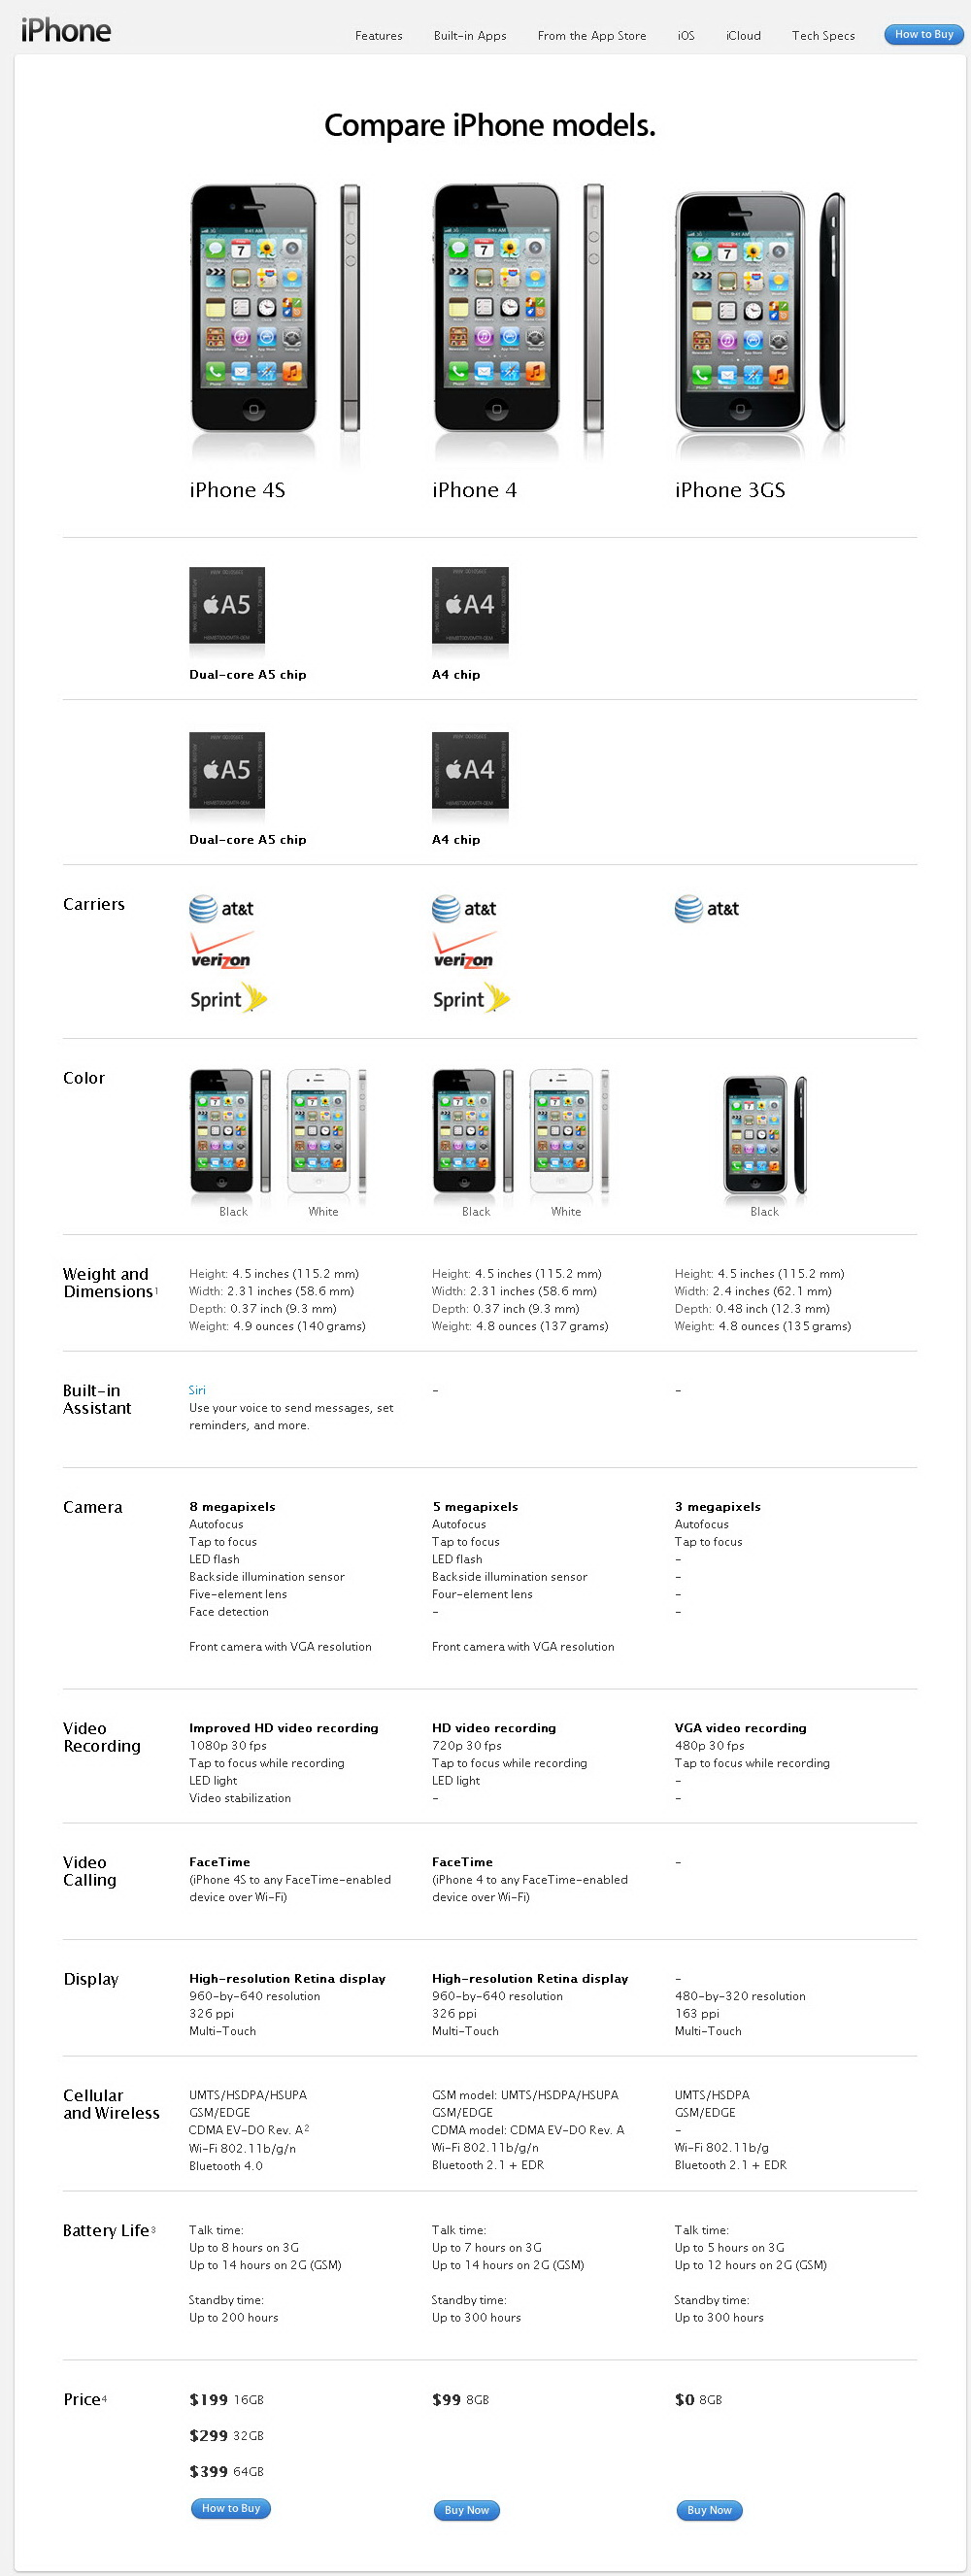 [Comparison Chart] iPhone 4S vs iPhone 4 vs iPhone 3GS